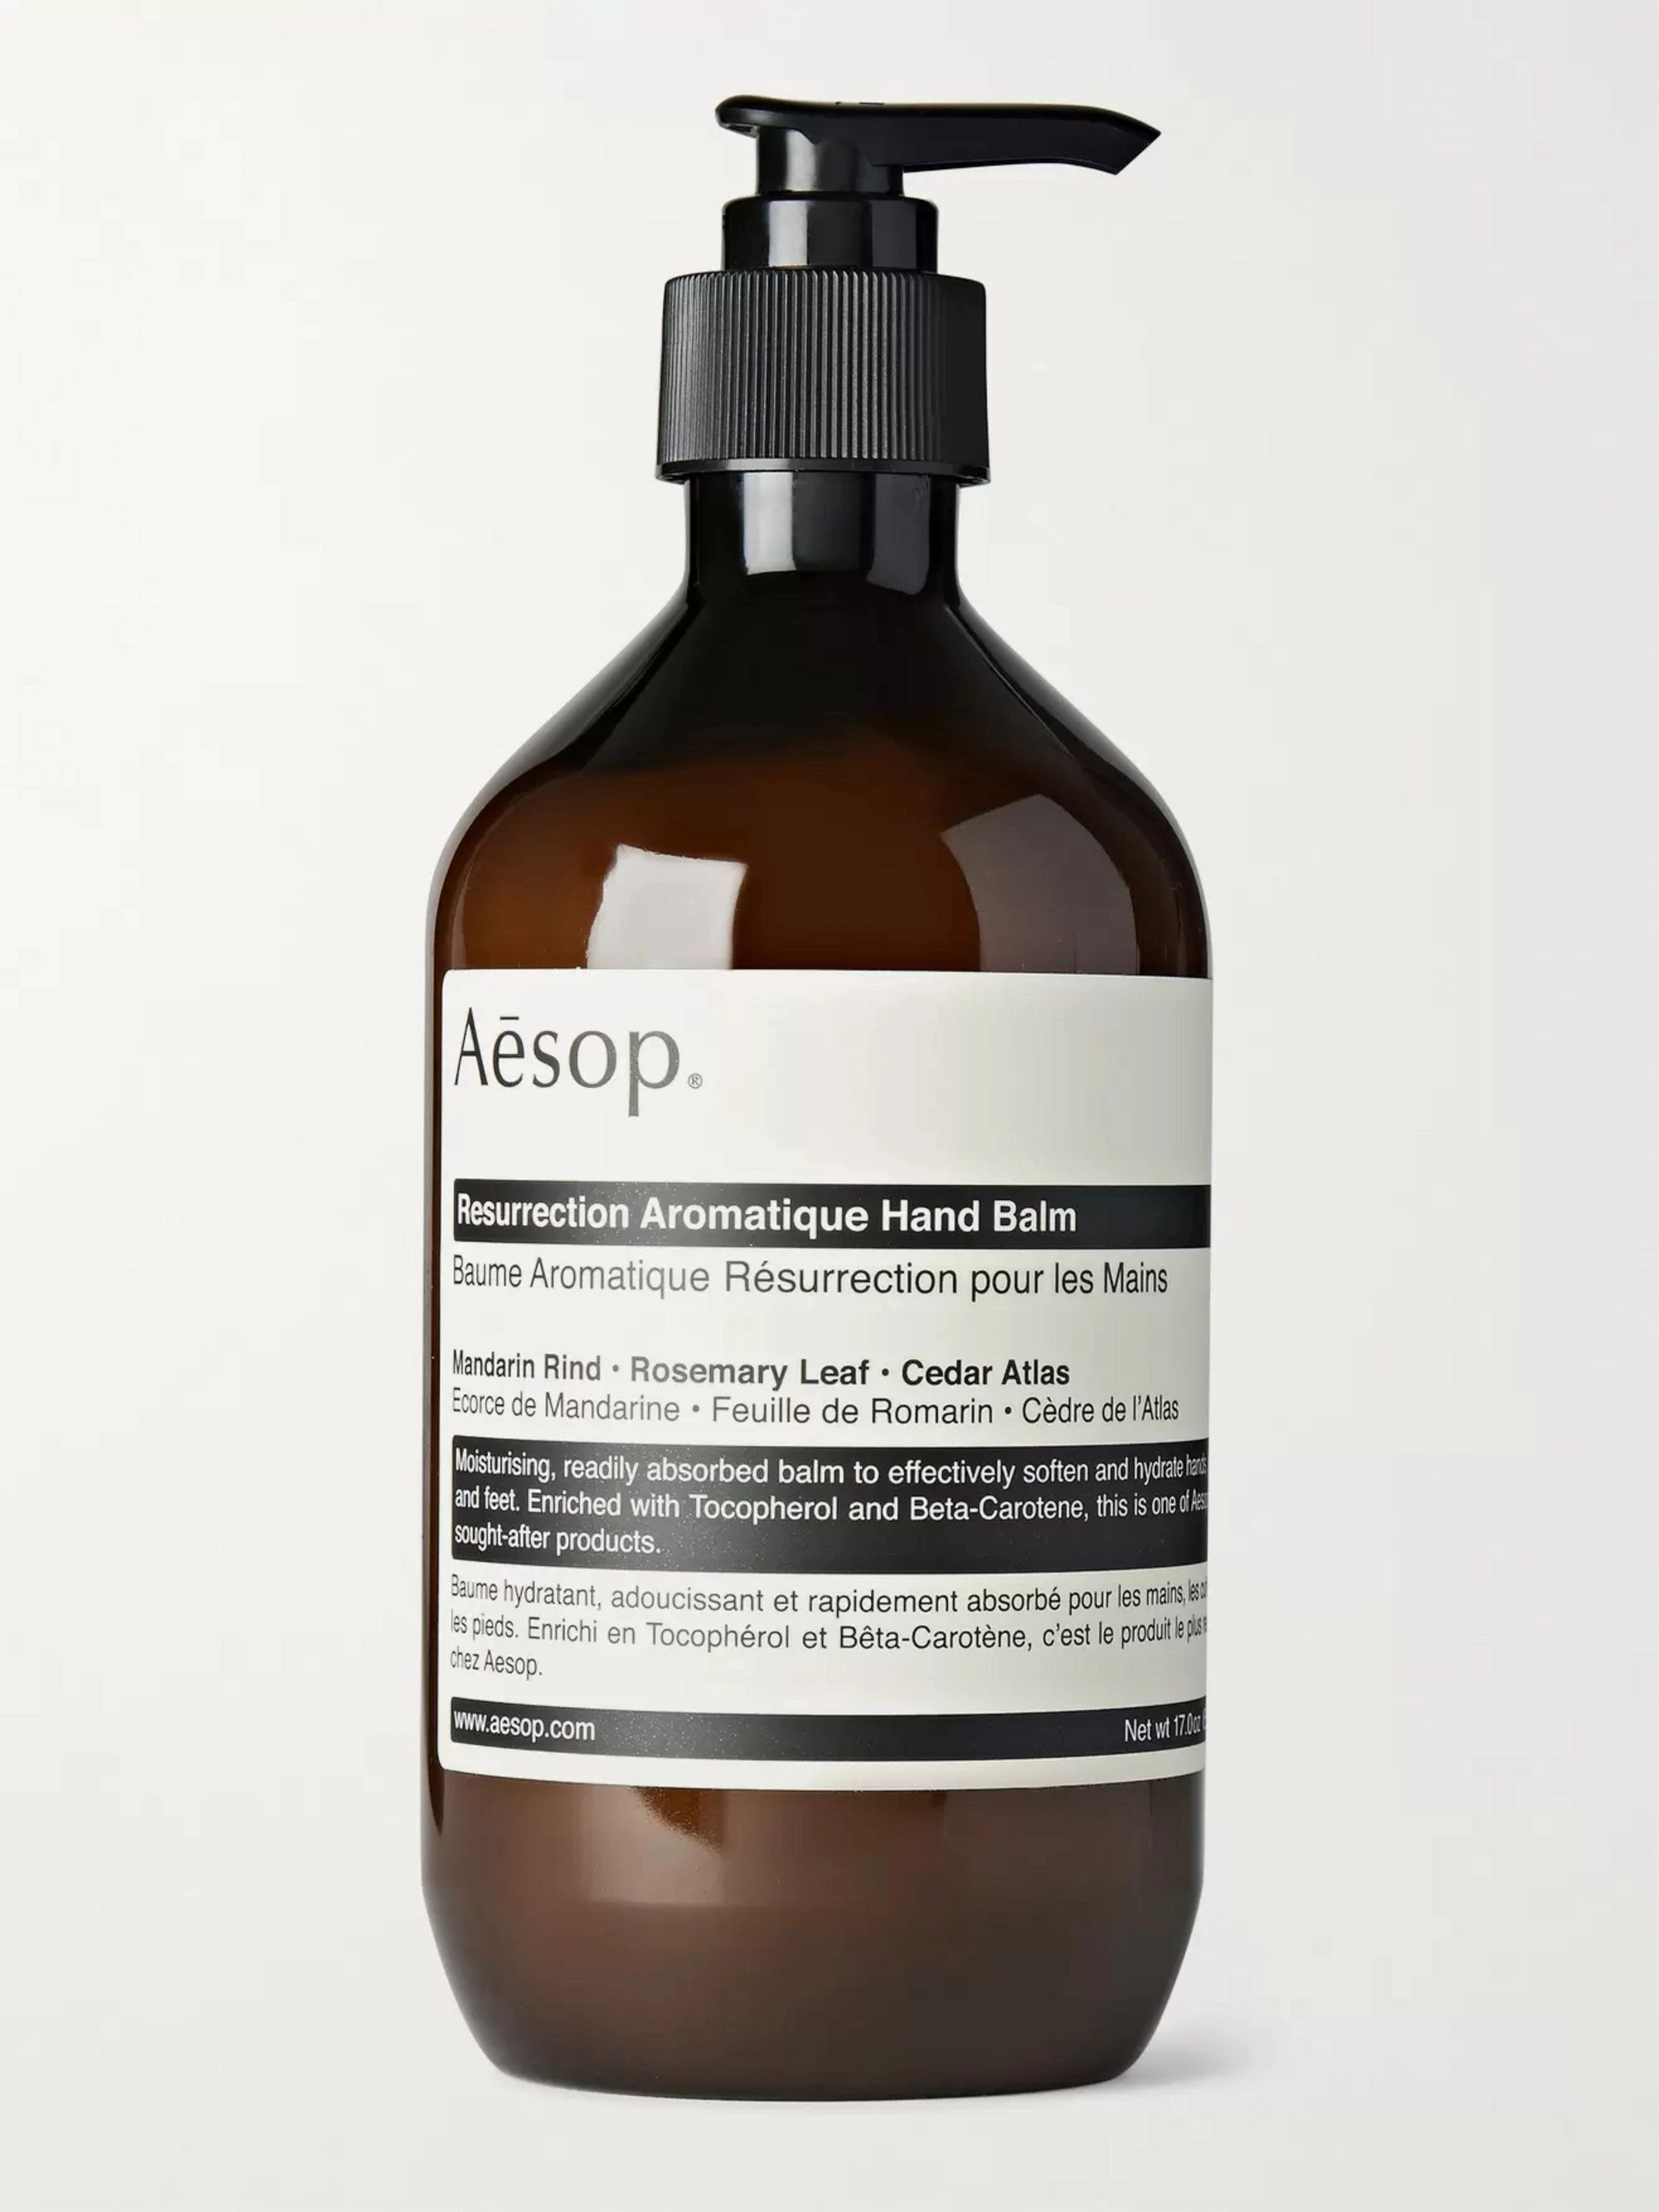 Aesop Resurrection Aromatique Hand Balm, 500ml